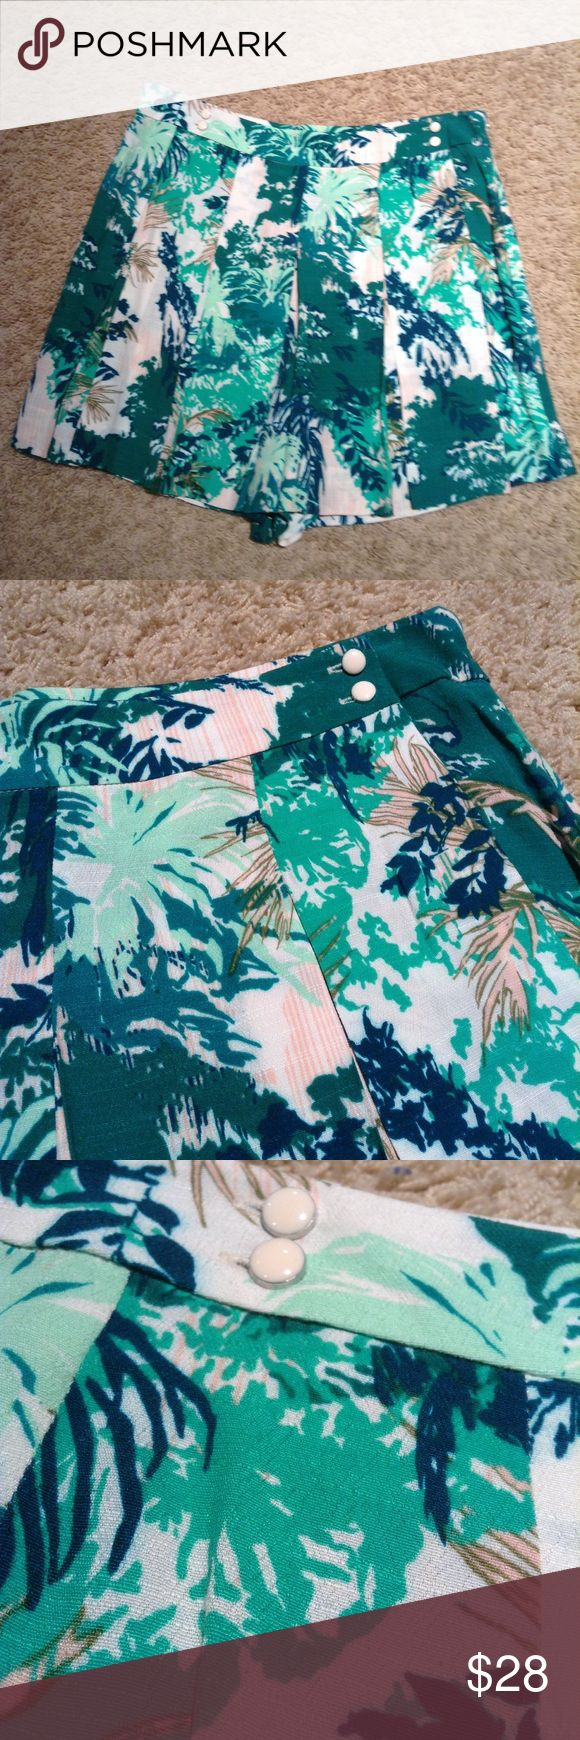 elevenses ANTHROPOLOGIE tropical print skort 4 Tropical print skort (skirted shorts) from Elevenses, sold only at Anthropologie. 100% rayon, lined in the back, and machine washable. Picture 4 shows these are normal shorts, and then have a skirted overlay in front. Hidden side zip closure. I see there is also supposed to be a hook/ eye closure on the inside top of the zipper, but the 'hook' part has come off. Easy fix, or totally wearable as-is. Otherwise like-new condition! Tagged as a 4…